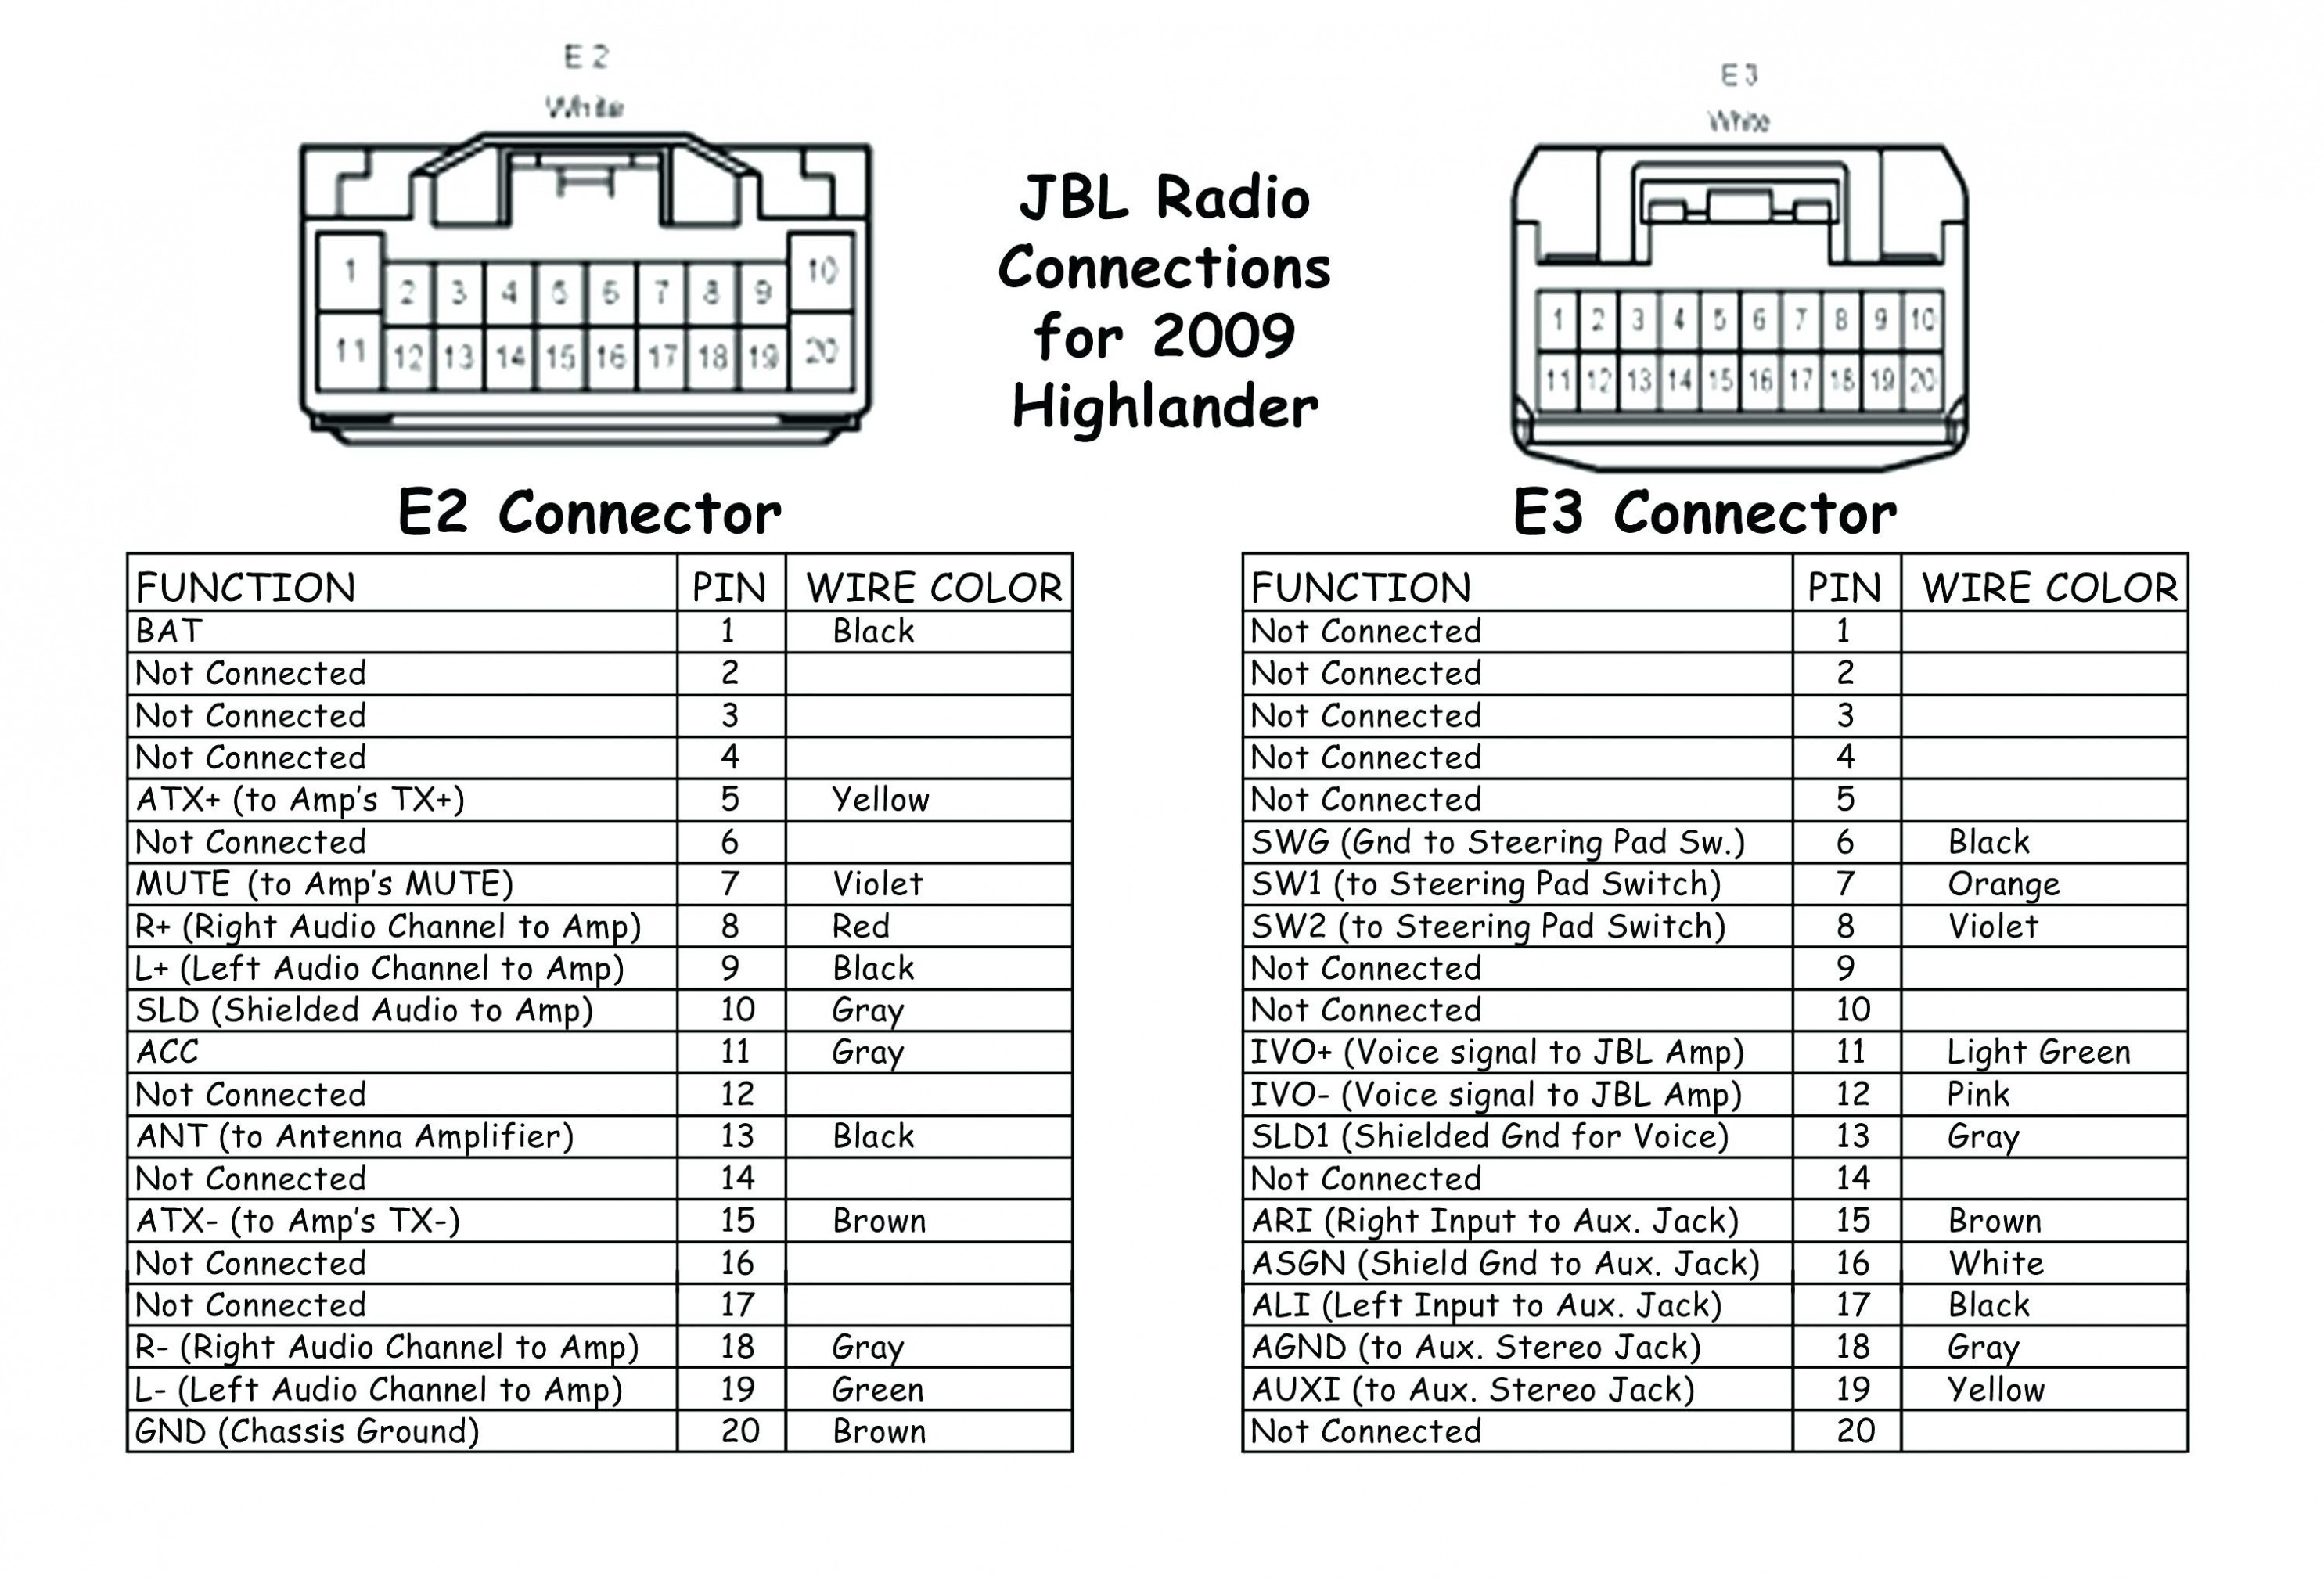 Sony Xplod Car Radio Wiring Diagram from static-cdn.imageservice.cloud